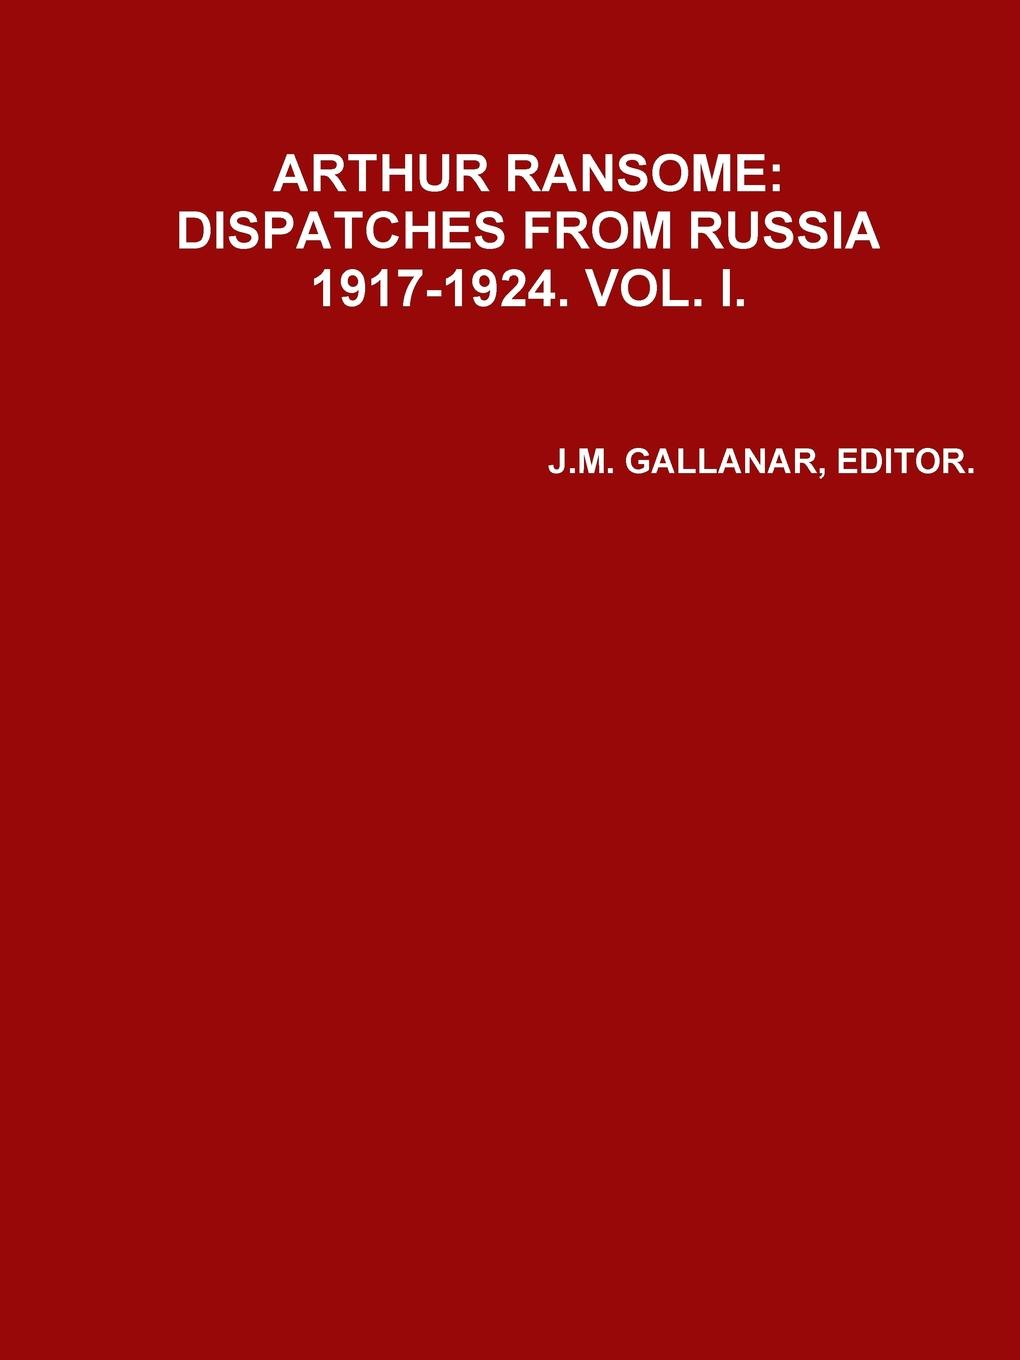 EDITOR J.M. GALLANAR ARHUR RANSOME. DISPATCHES FROM RUSSIA 1917-1924.VOL. i 1917 russia s red year